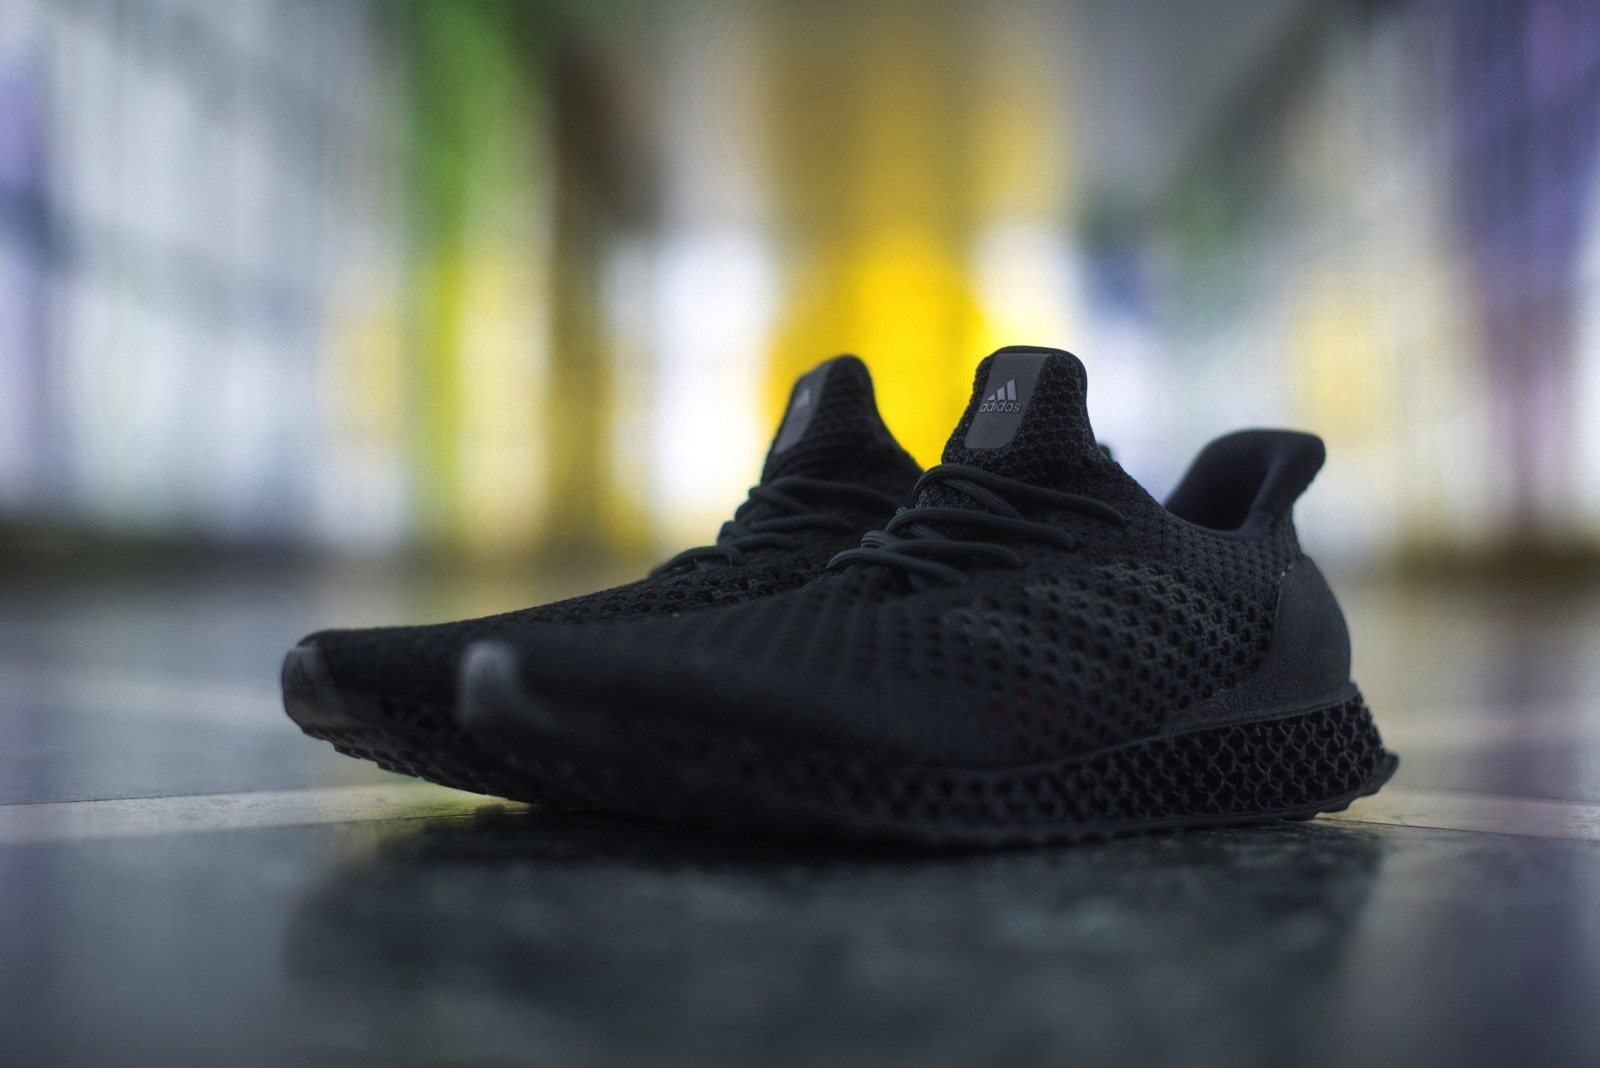 The Adidas 3D printed runner. Photo via Engadget.